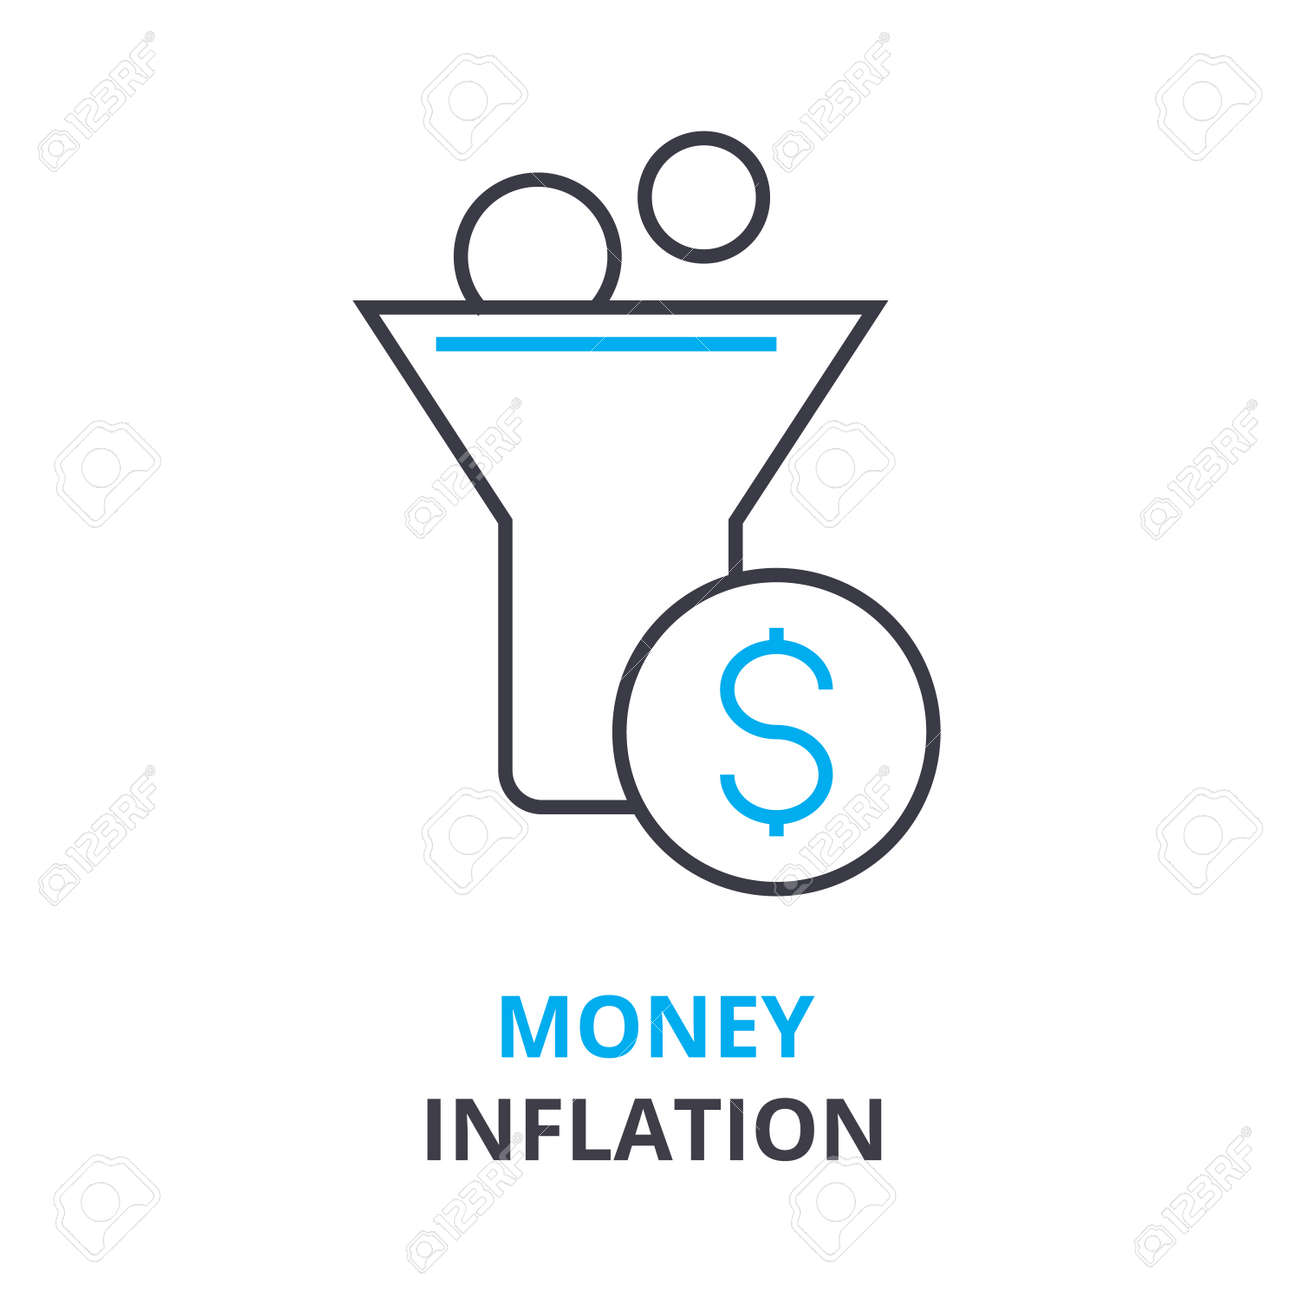 Money inflation concept outline icon linear sign thin line money inflation concept outline icon linear sign thin line pictogram logo ccuart Image collections